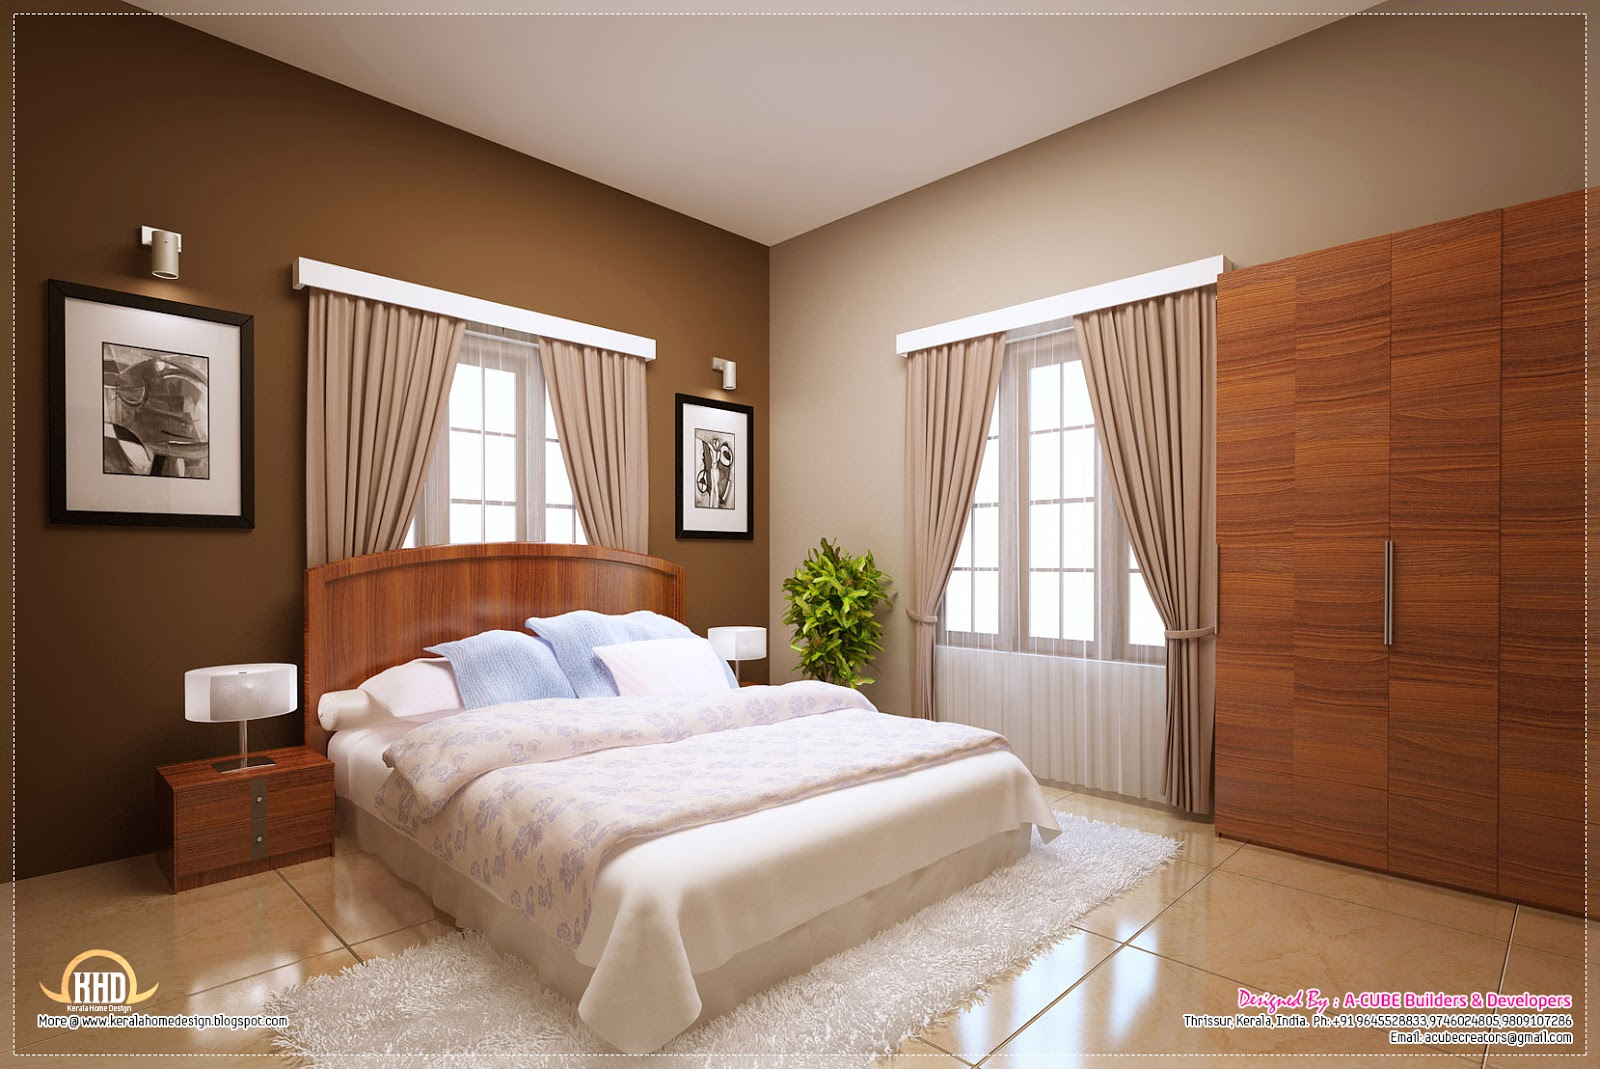 Awesome interior decoration ideas kerala home design and for Interior designs for bedrooms indian style